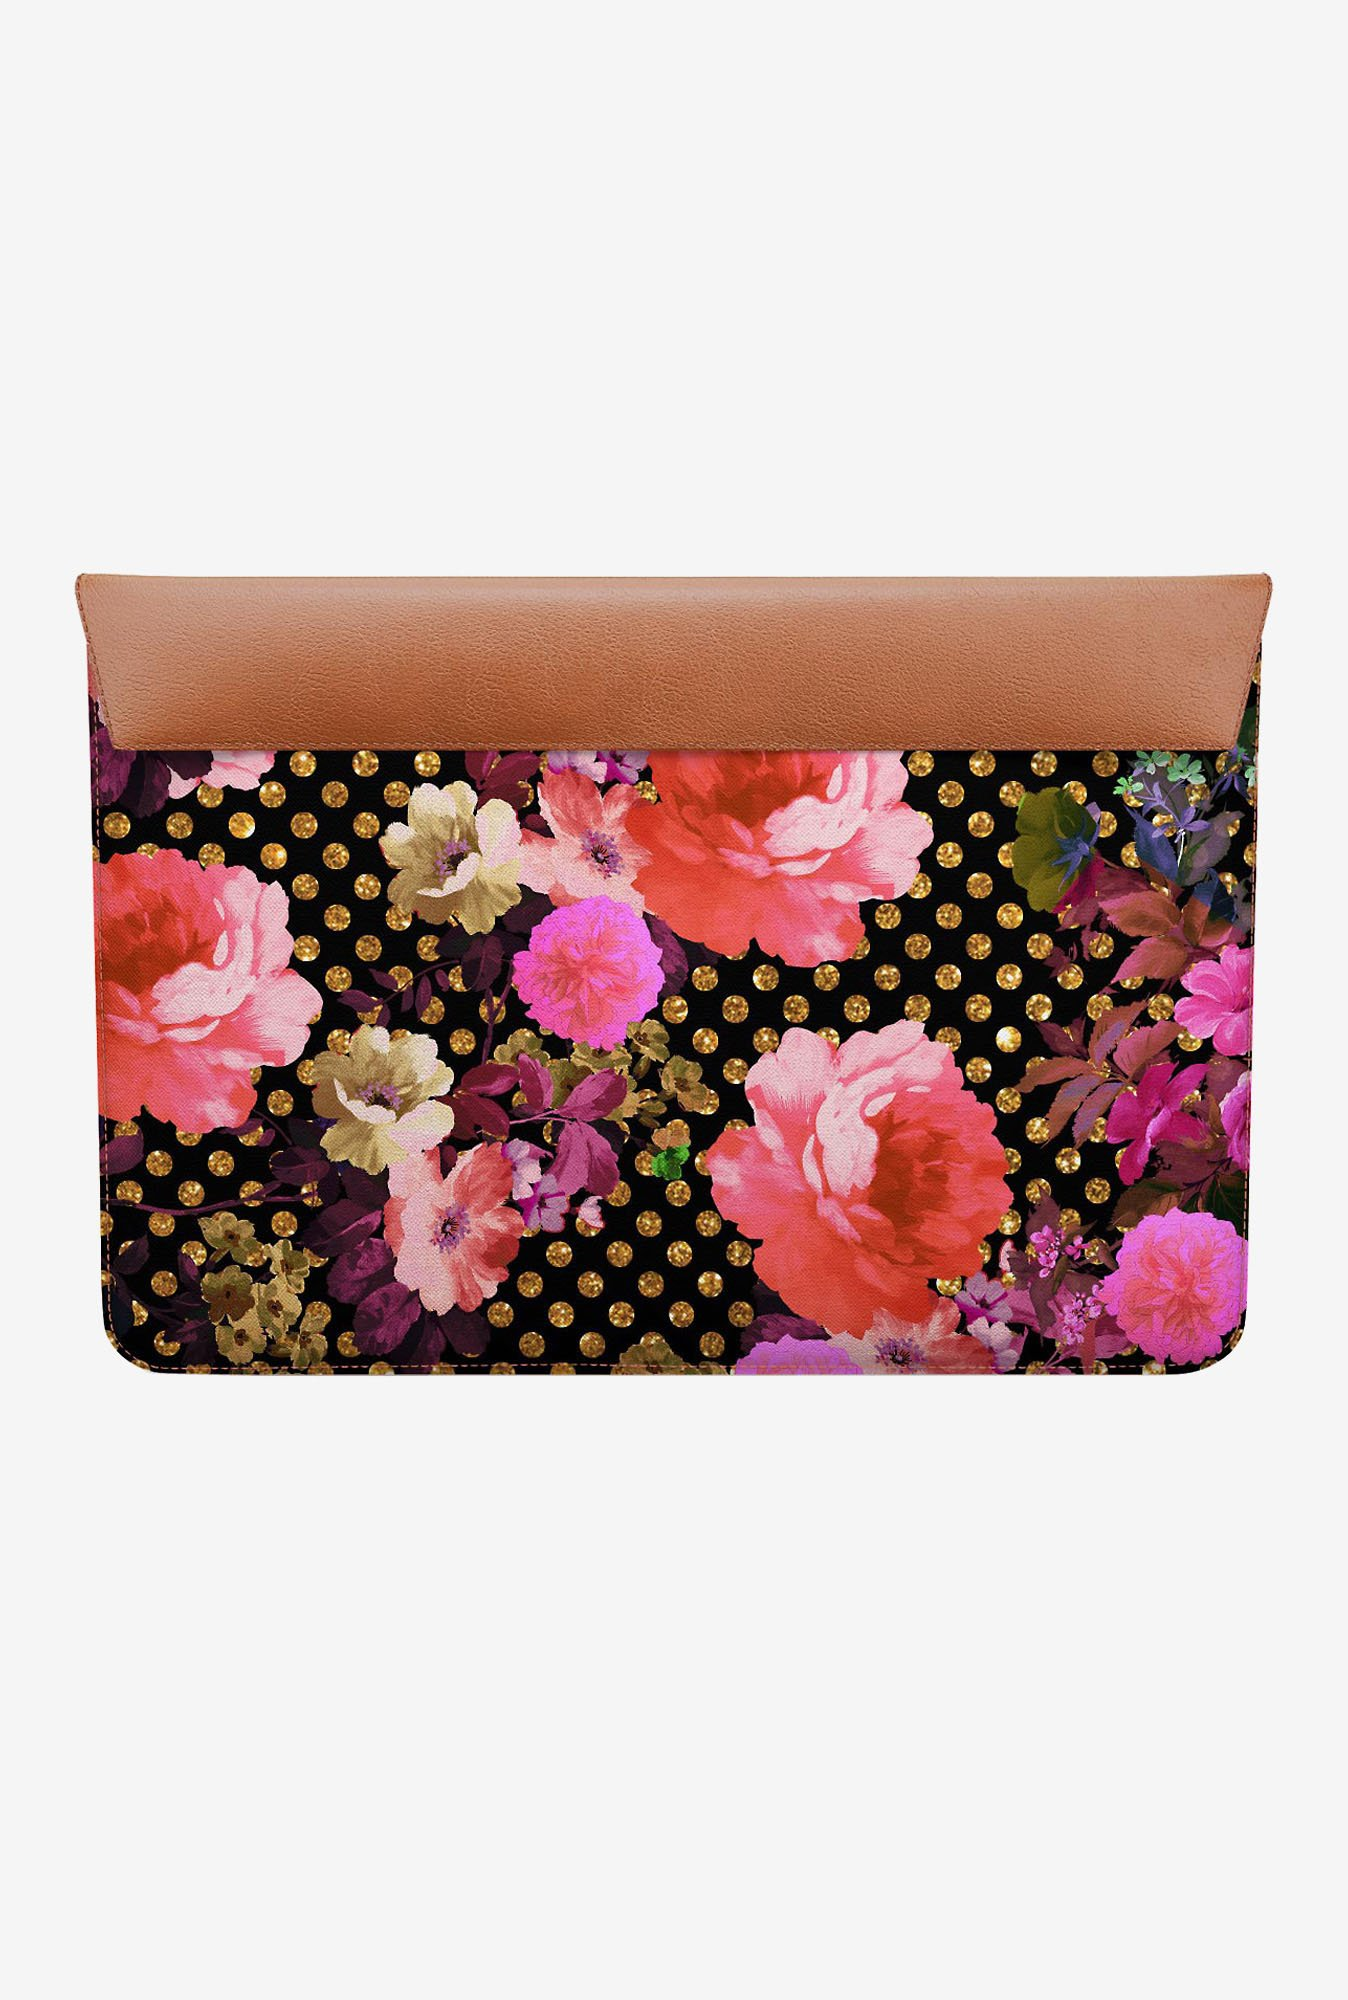 DailyObjects Flowers Dots MacBook Pro 13 Envelope Sleeve